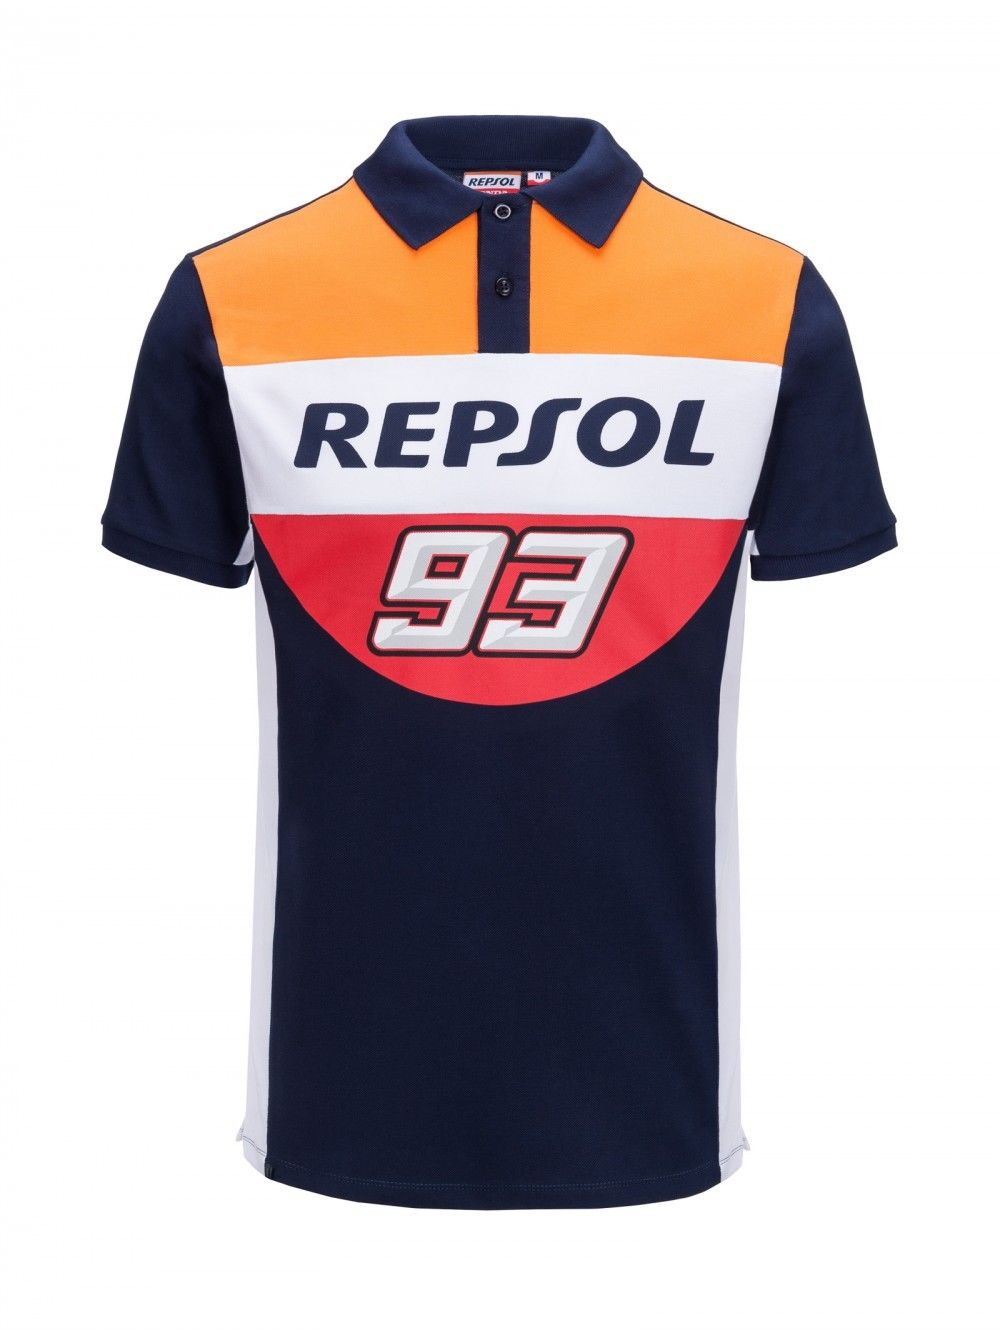 100% Cotton HRC Moto GP Marquez 93 Repsol Polo Shirt Motorcycle ATV Sports Large Ant Racing Polo